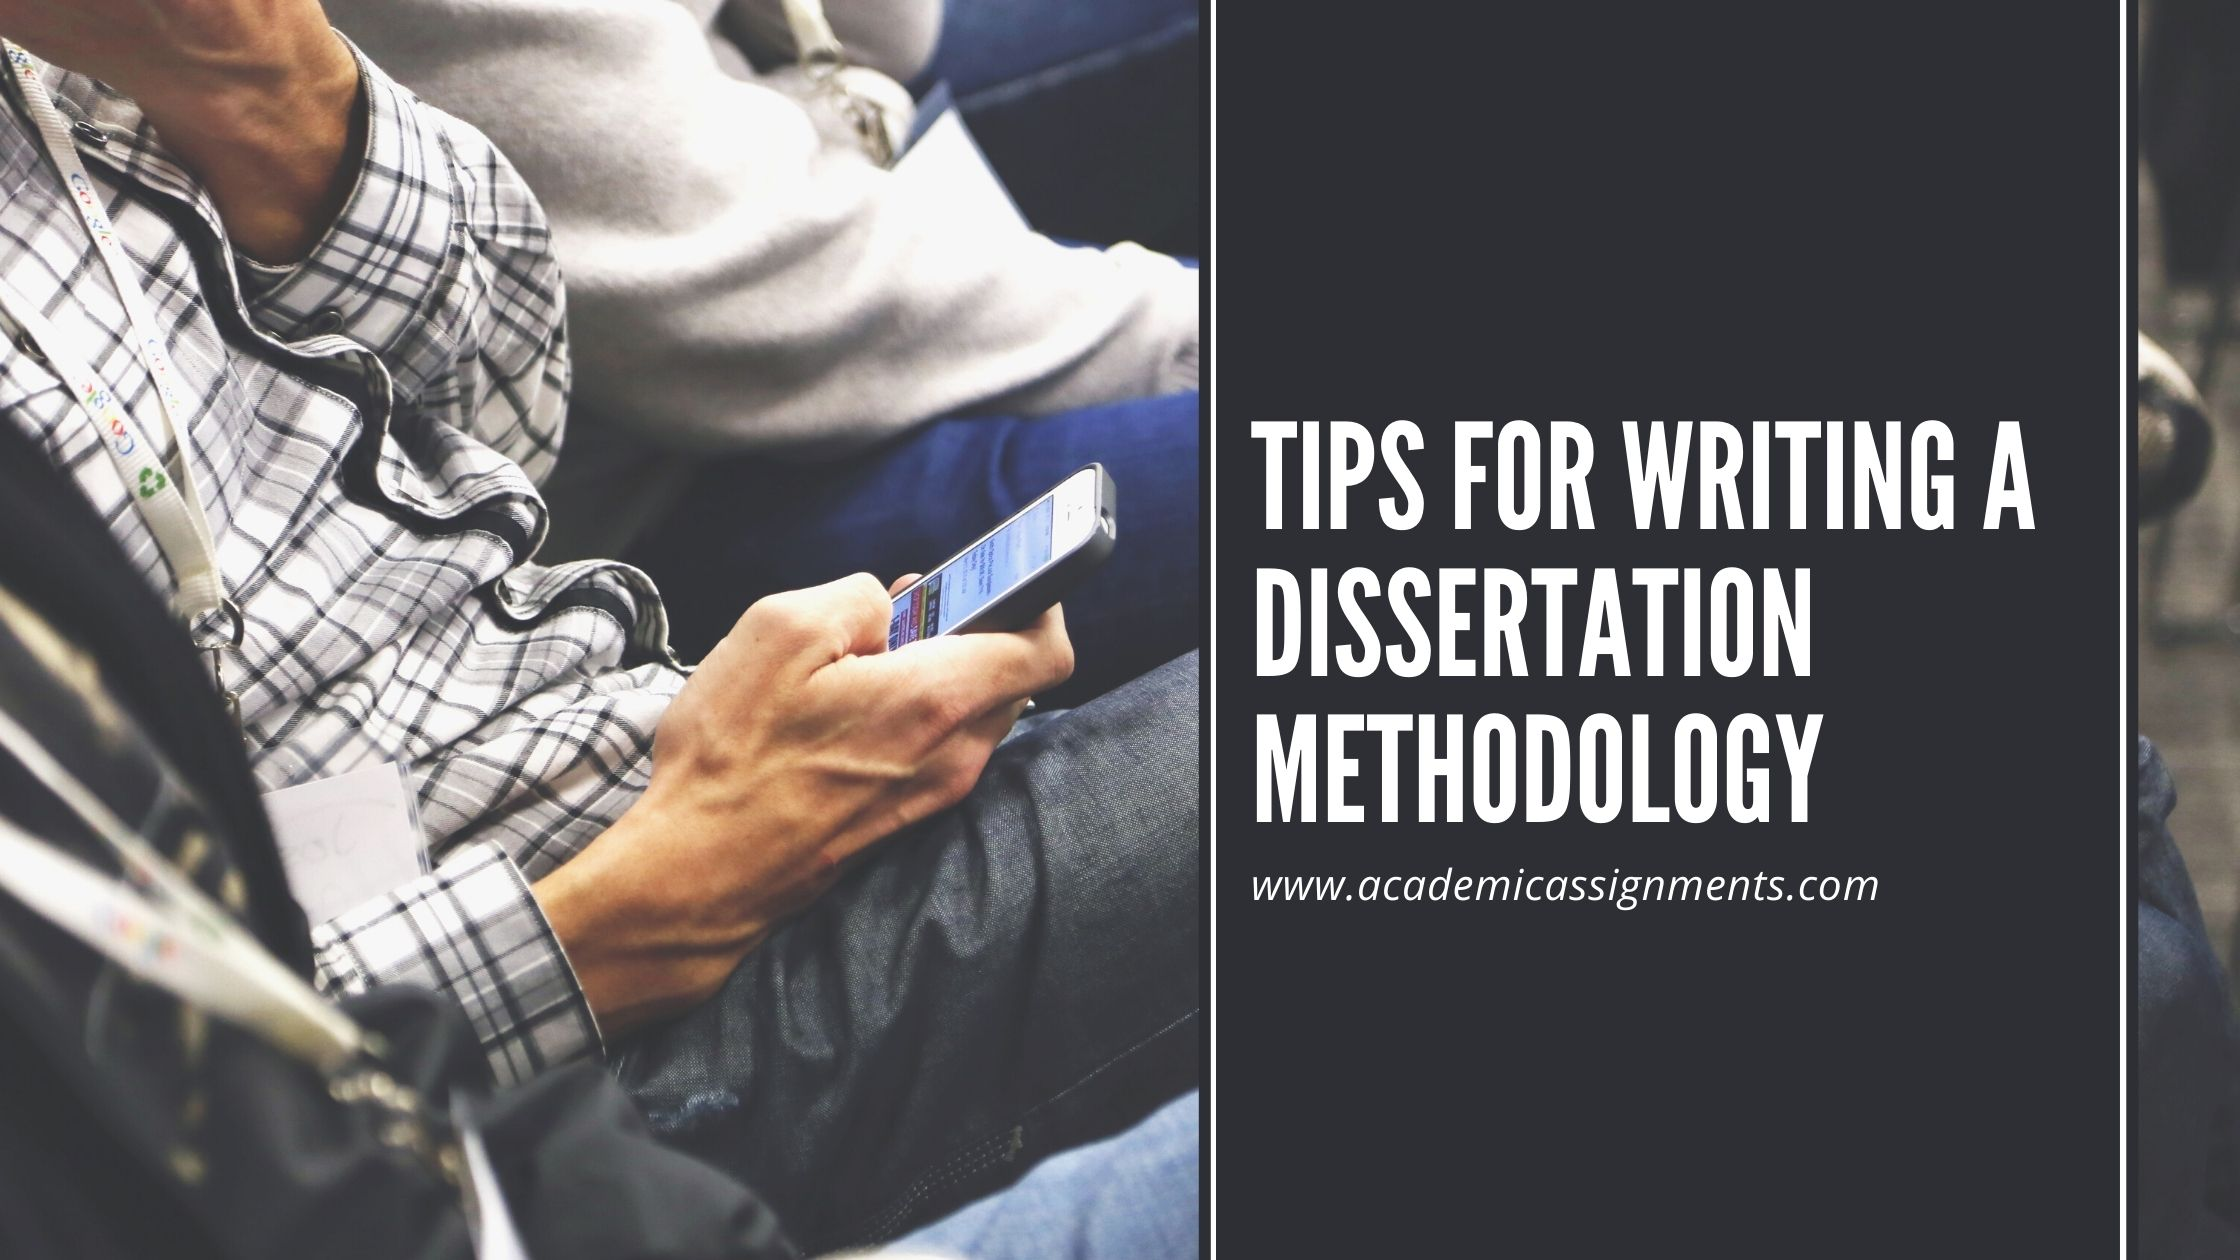 Tips for writing a dissertation methodology